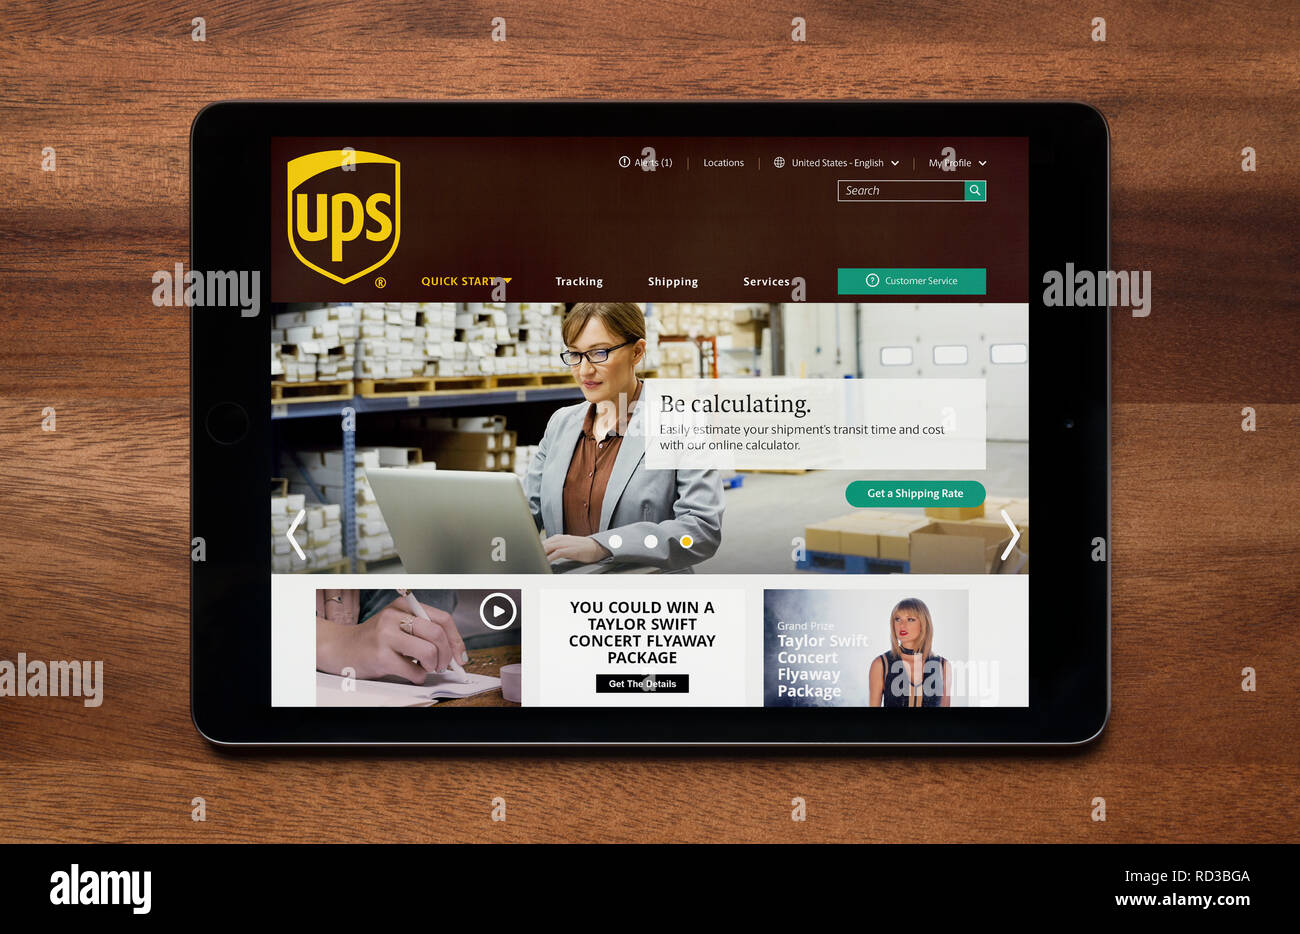 The website of UPS is seen on an iPad tablet, which is resting on a wooden table (Editorial use only). - Stock Image